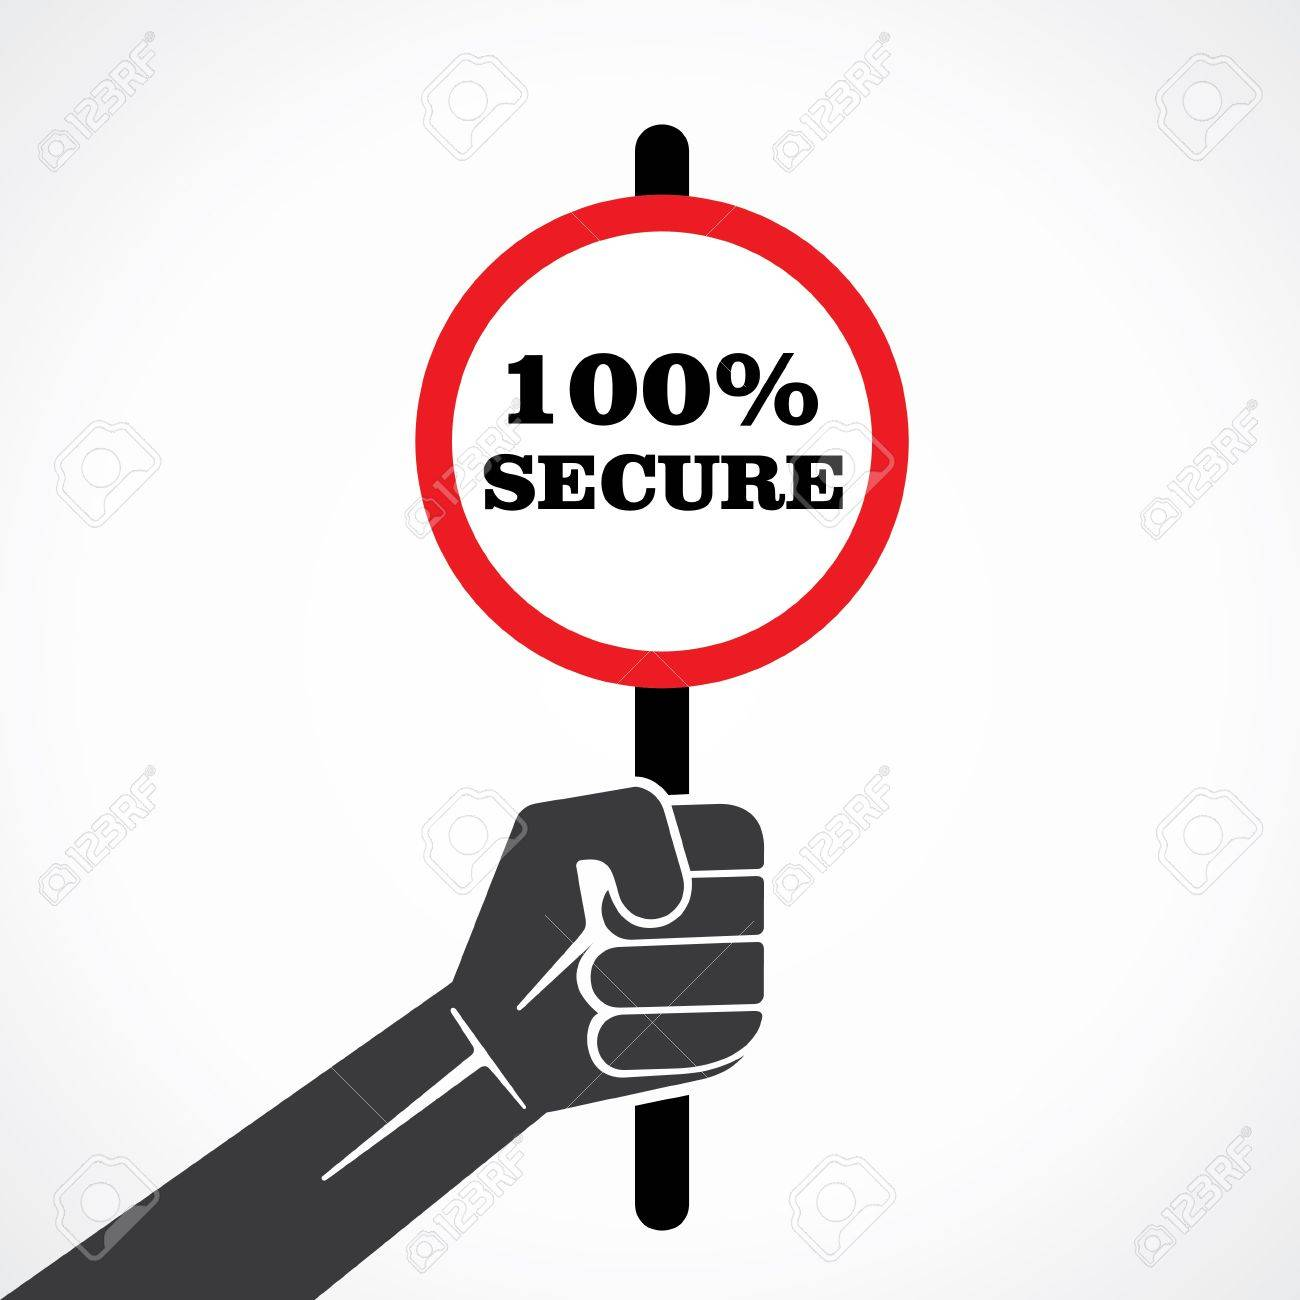 100  secure word banner hold in hand stock vector Stock Vector - 22097781